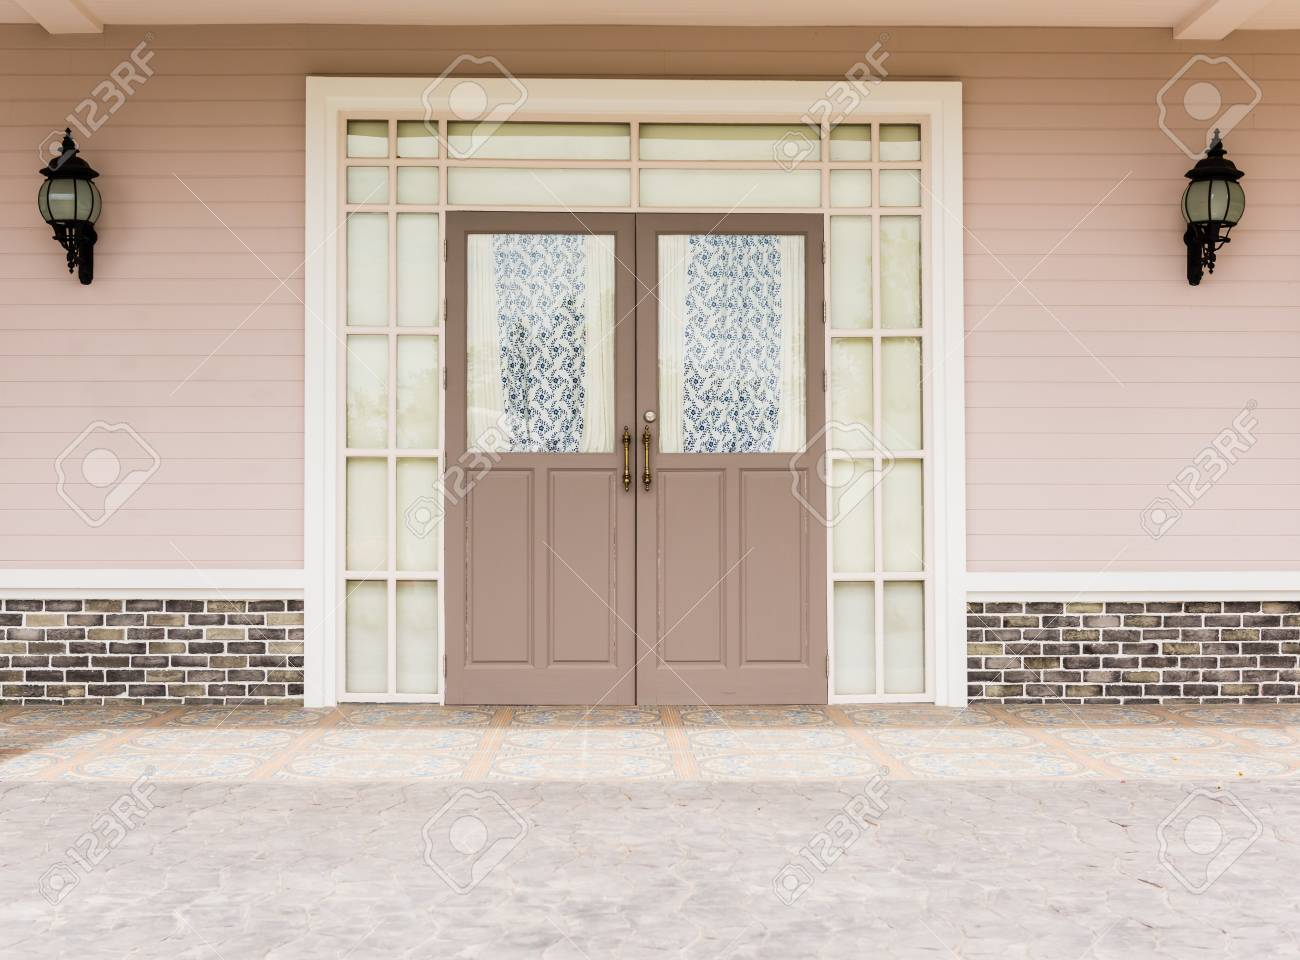 Entrance Vintage House Leading To A Double Glass Paned Front Door With Two  Large Front Lanterns